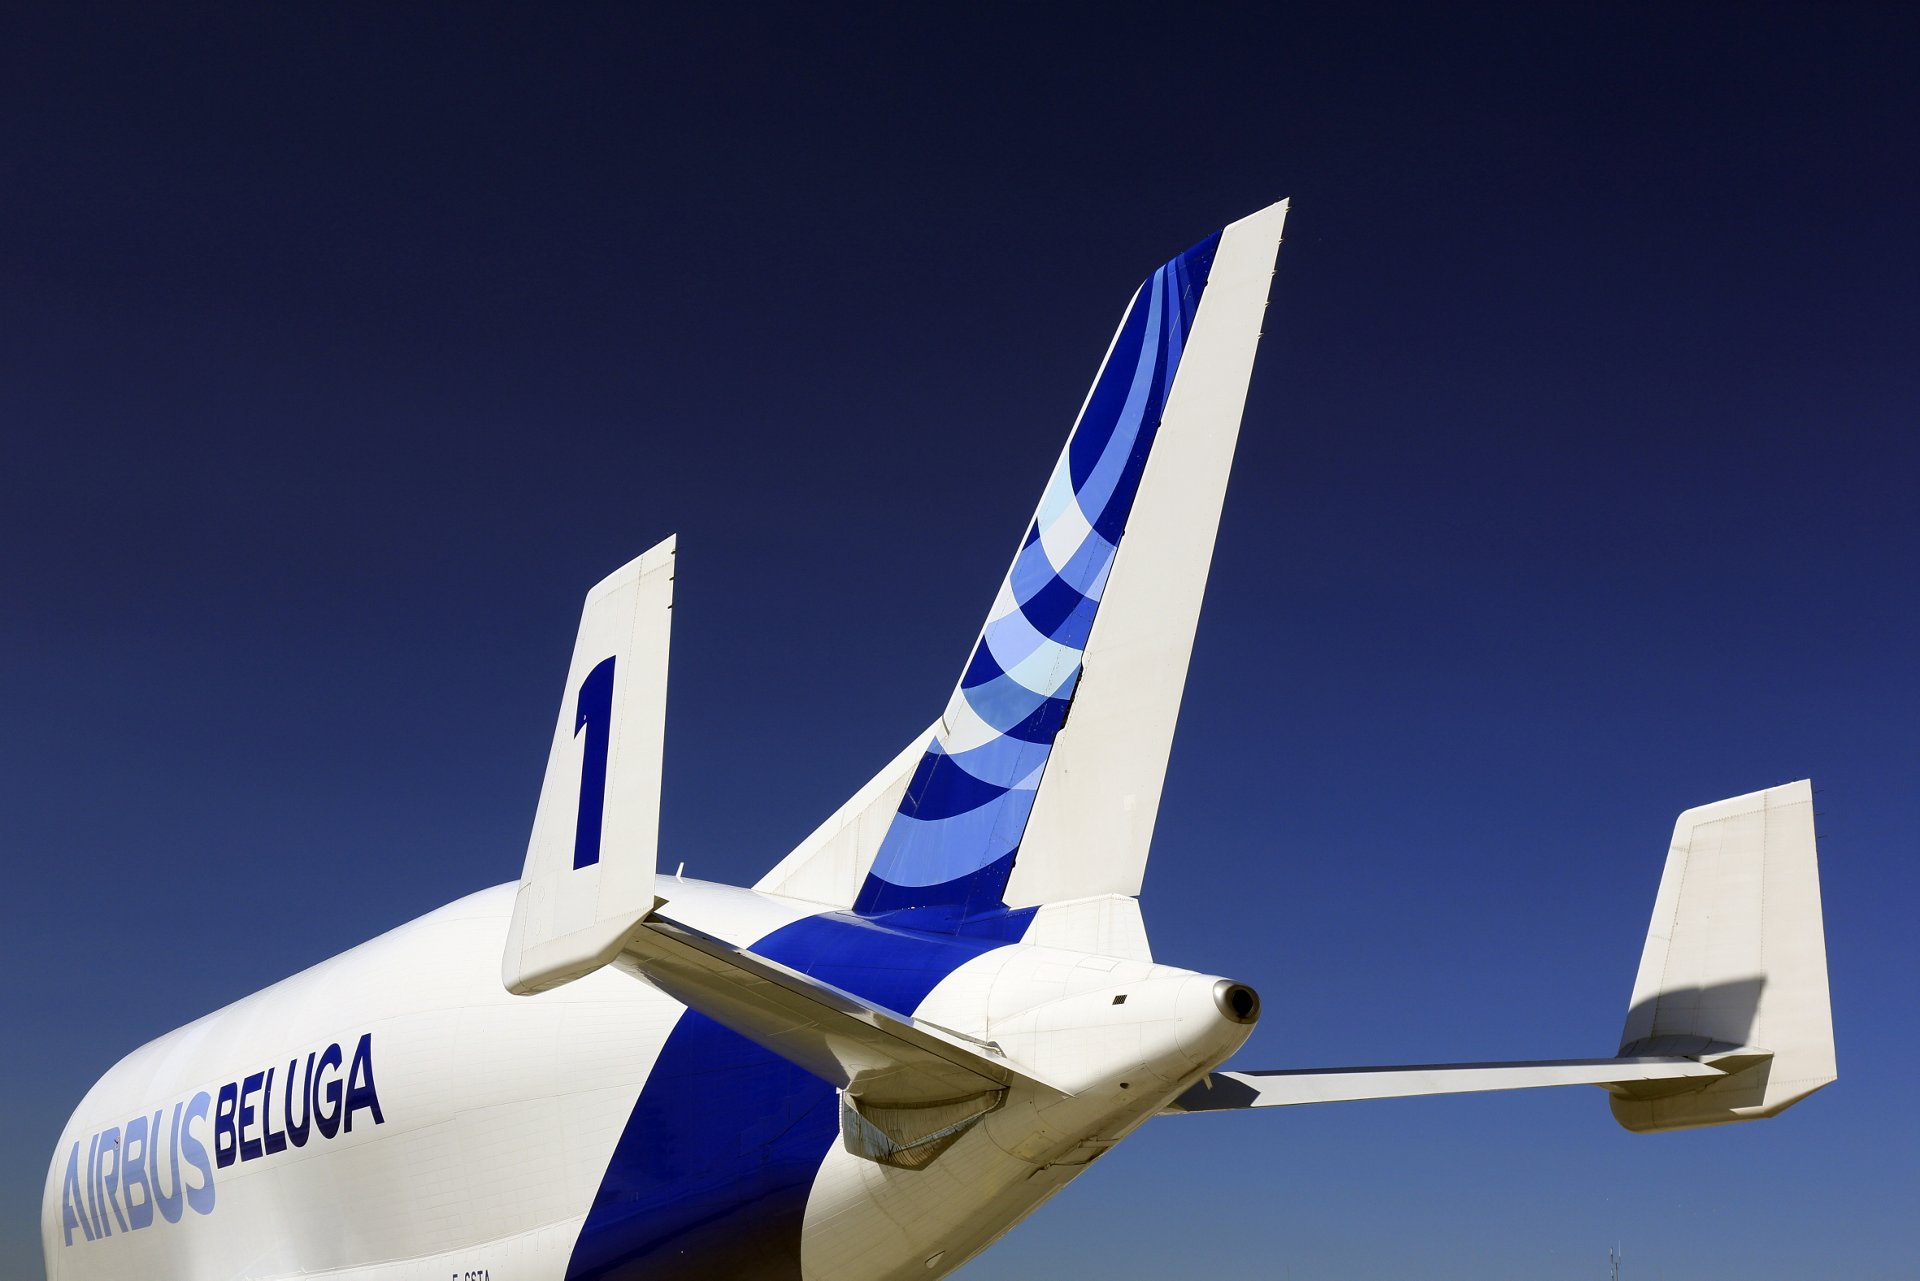 Airbus Beluga – Tail close-up 1